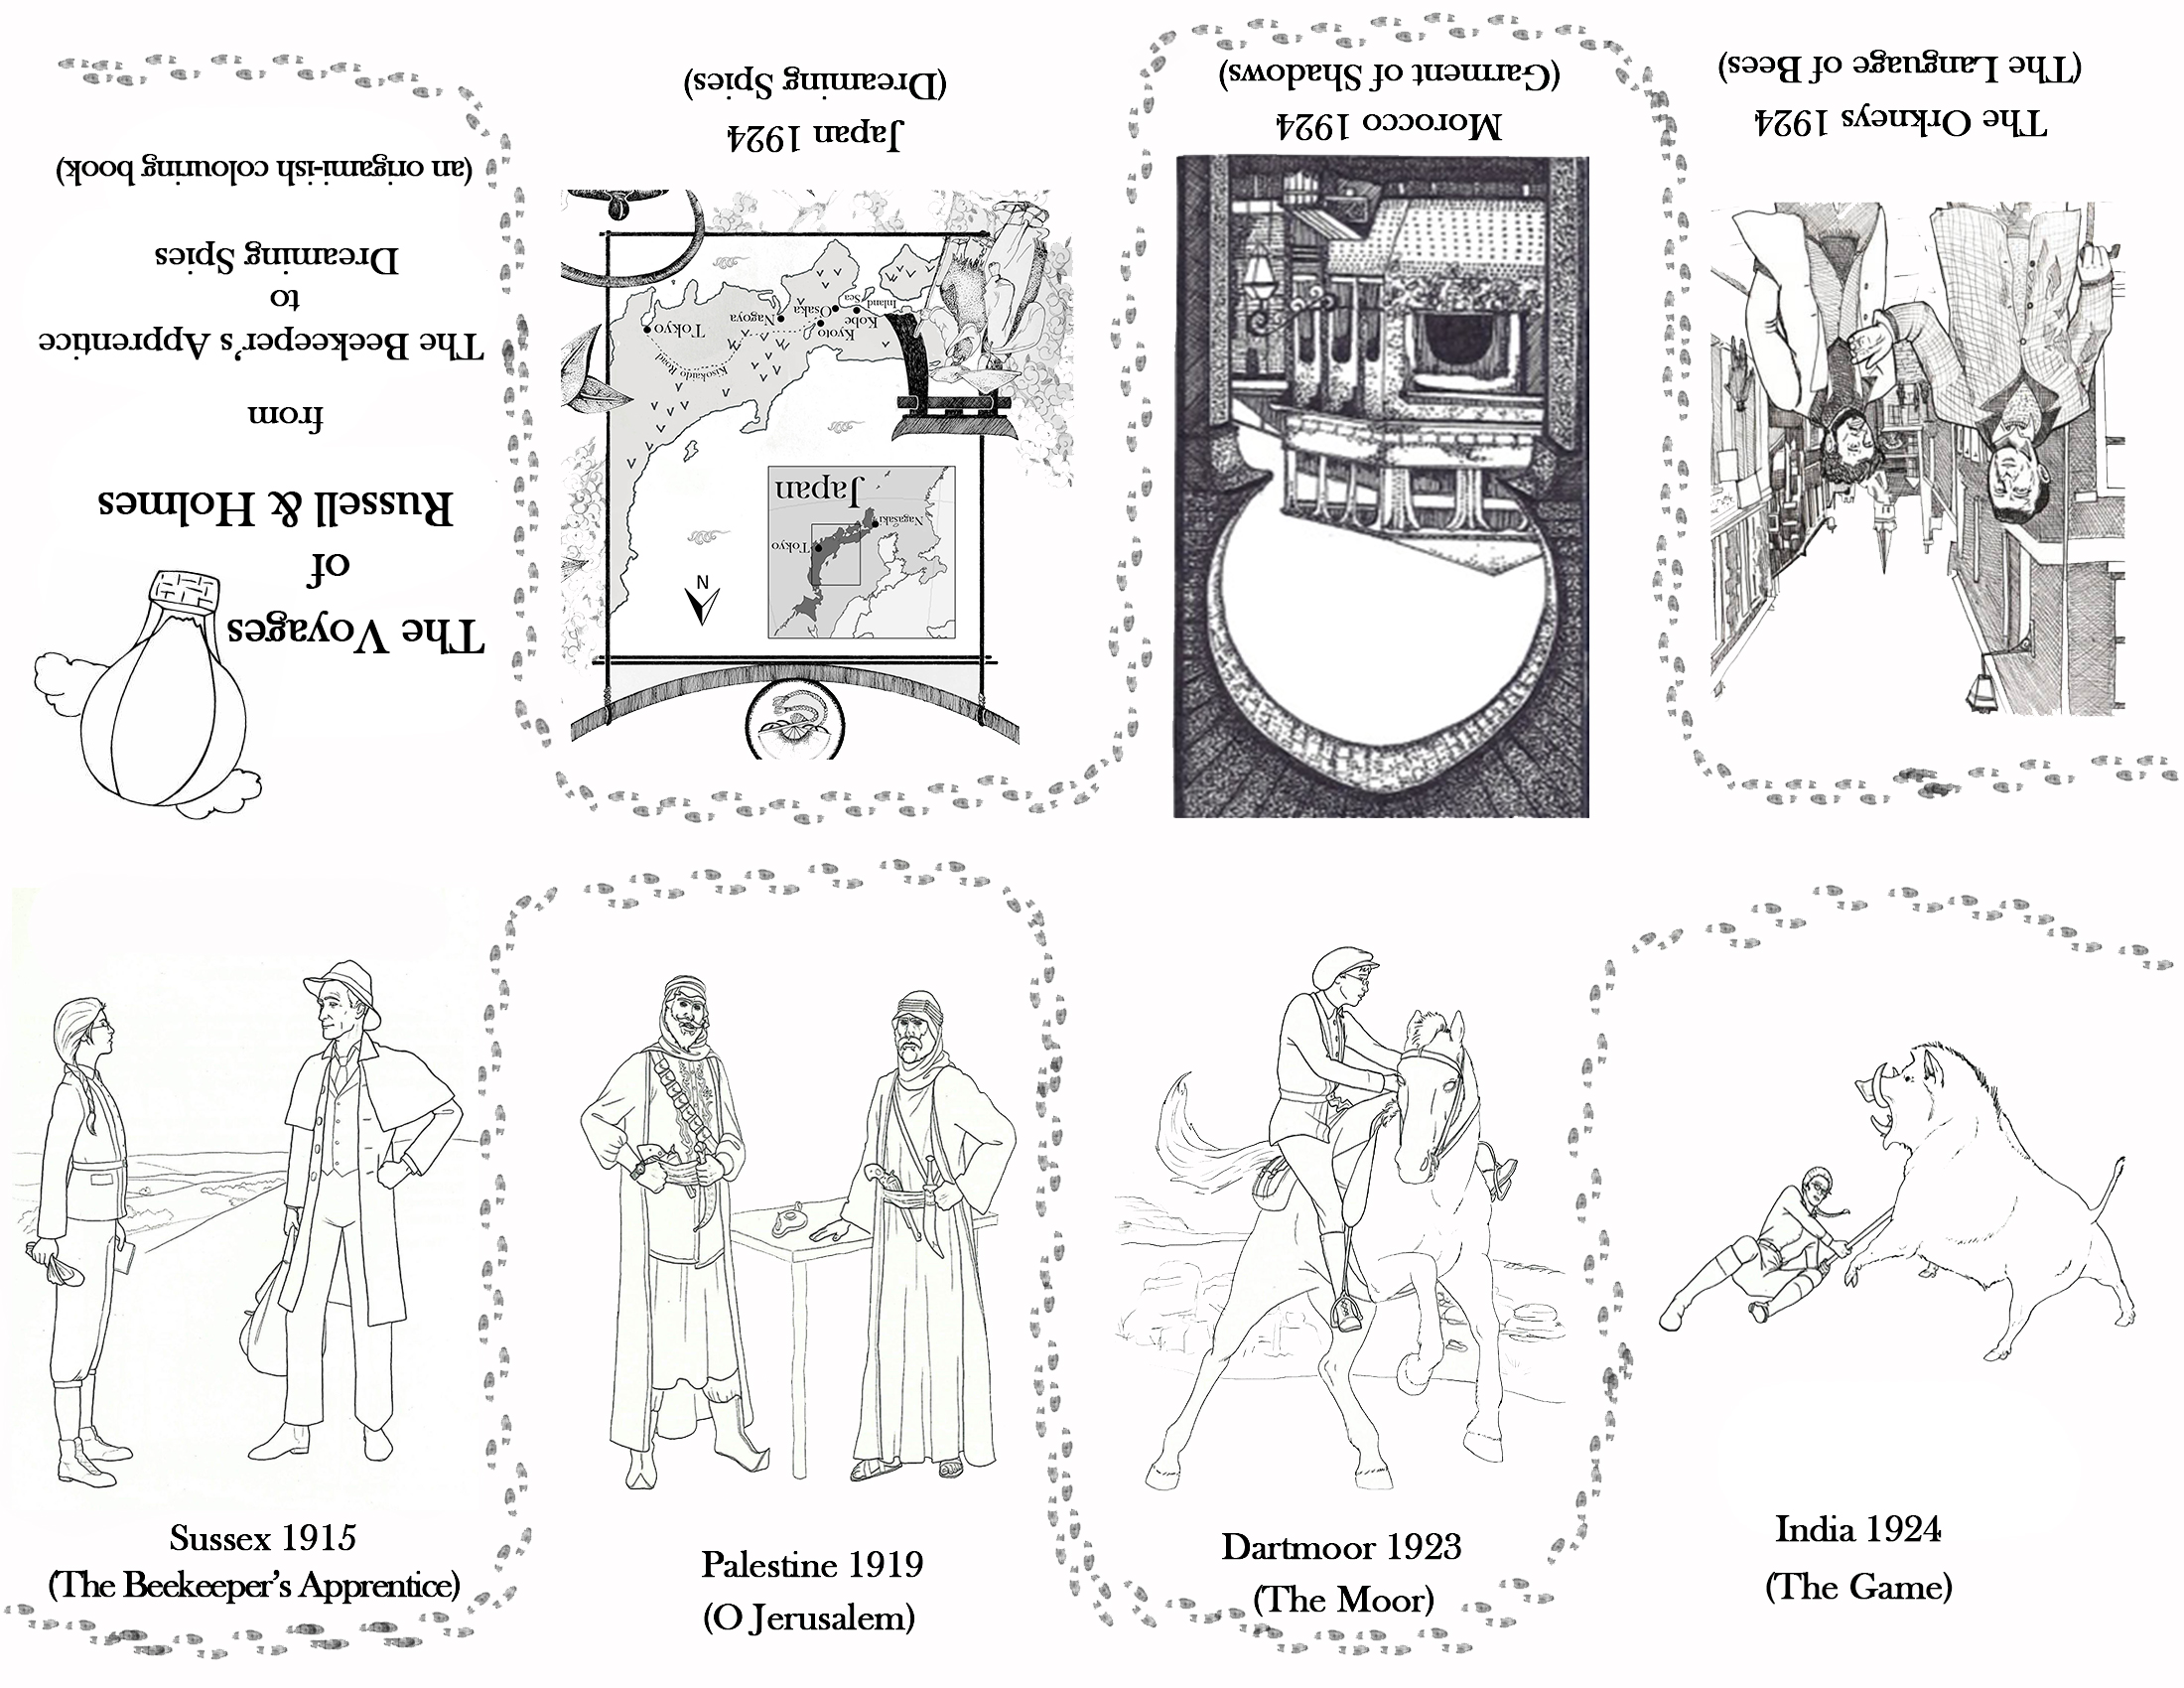 coloring-book-voyages-of-russell-holmes-dreaming-spies